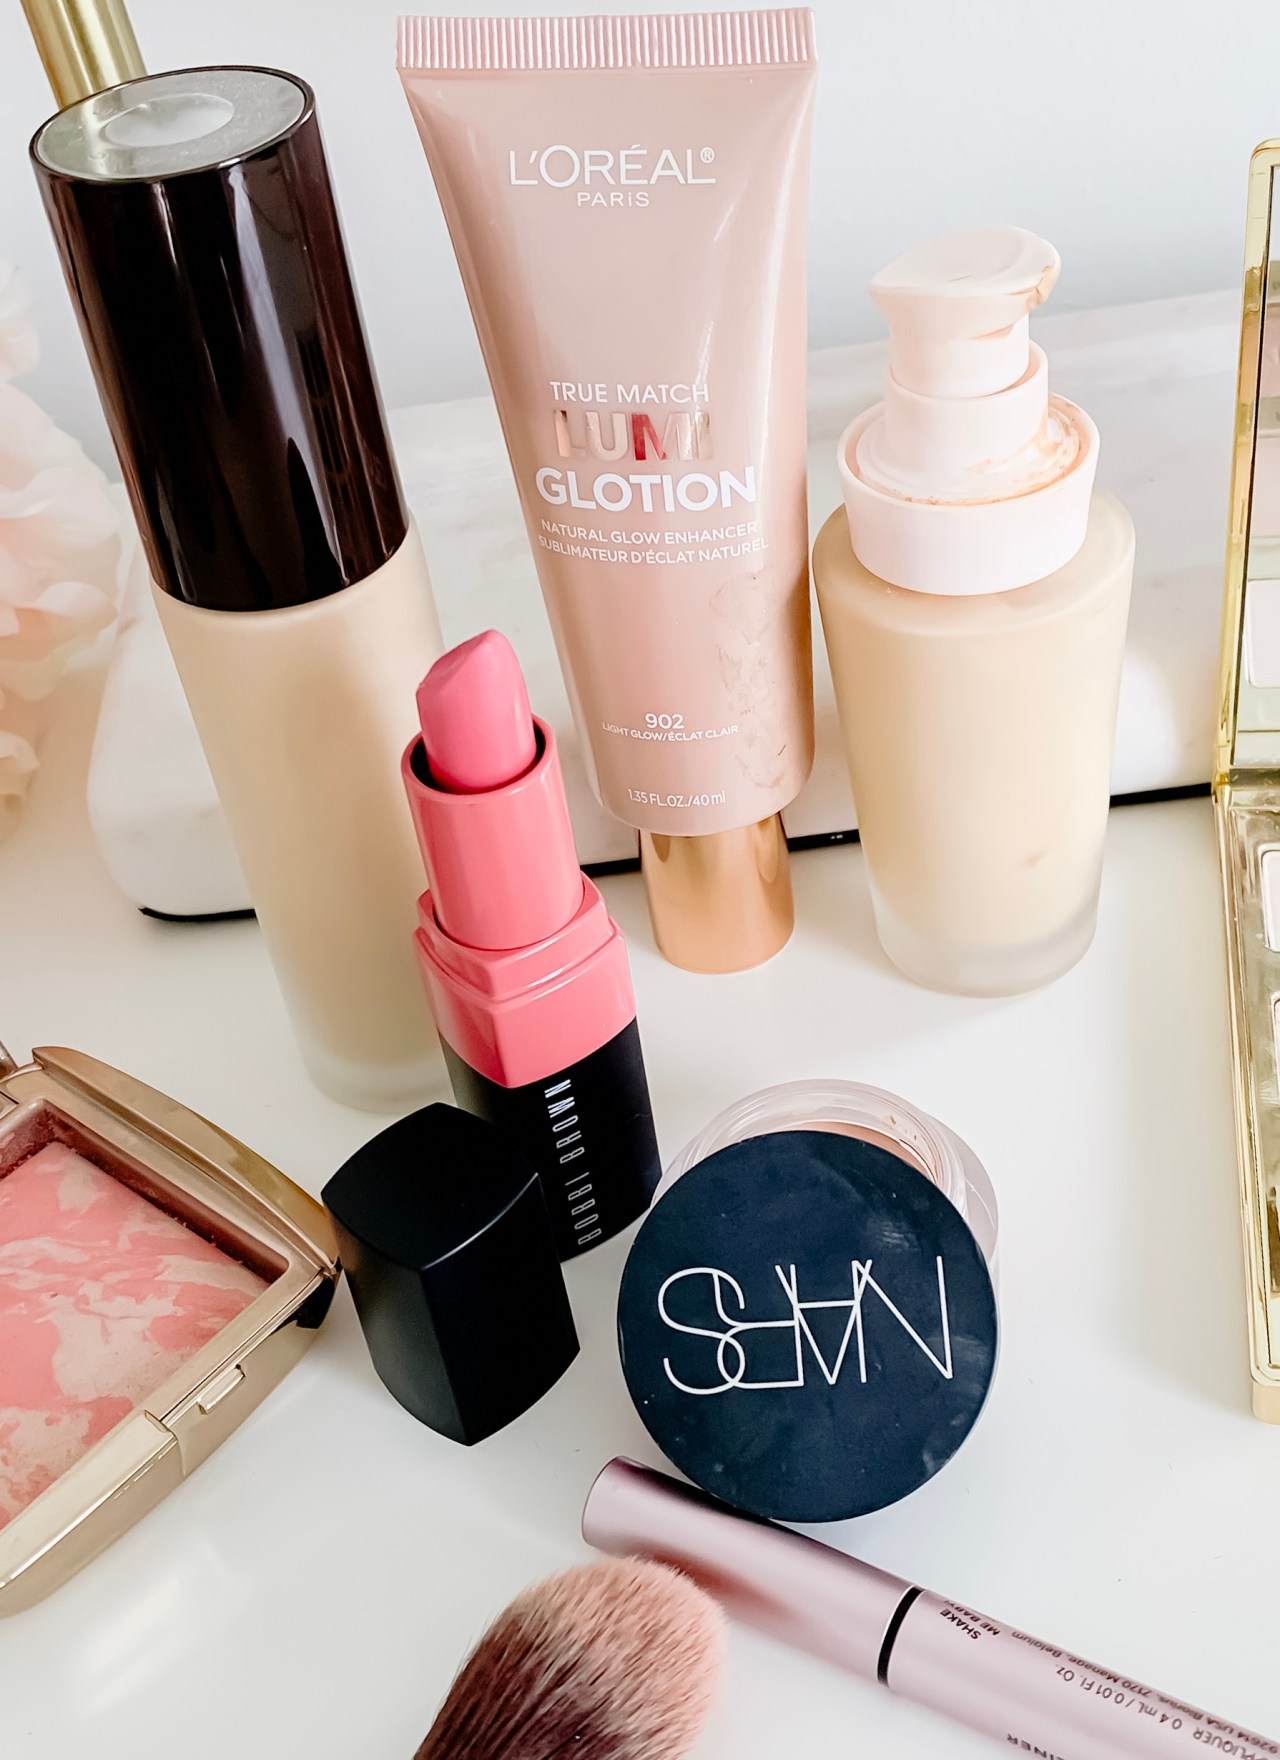 MAKEUP TUTORIAL FOR LOOKING GOOD IN PHOTOS | I share a makeup tutorial for how to apply makeup for photos & the best products to help you look your best.